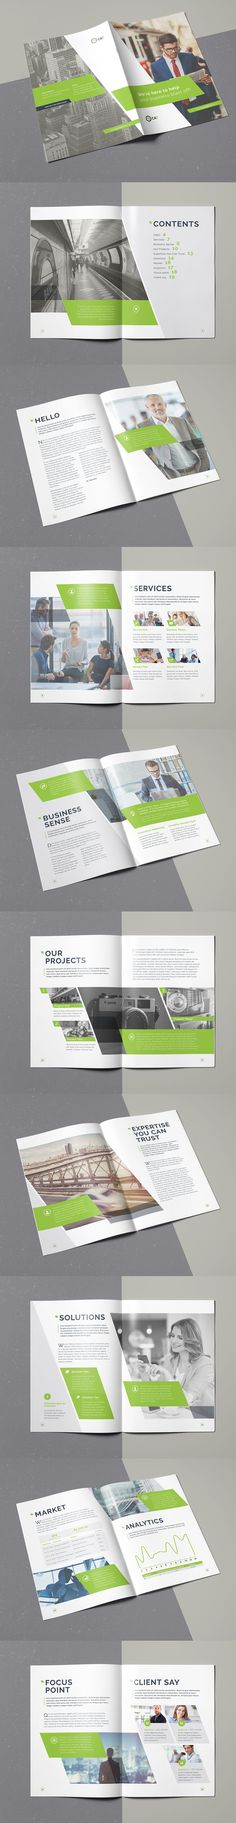 Business Brochure Template INDD - 20 Pages A4